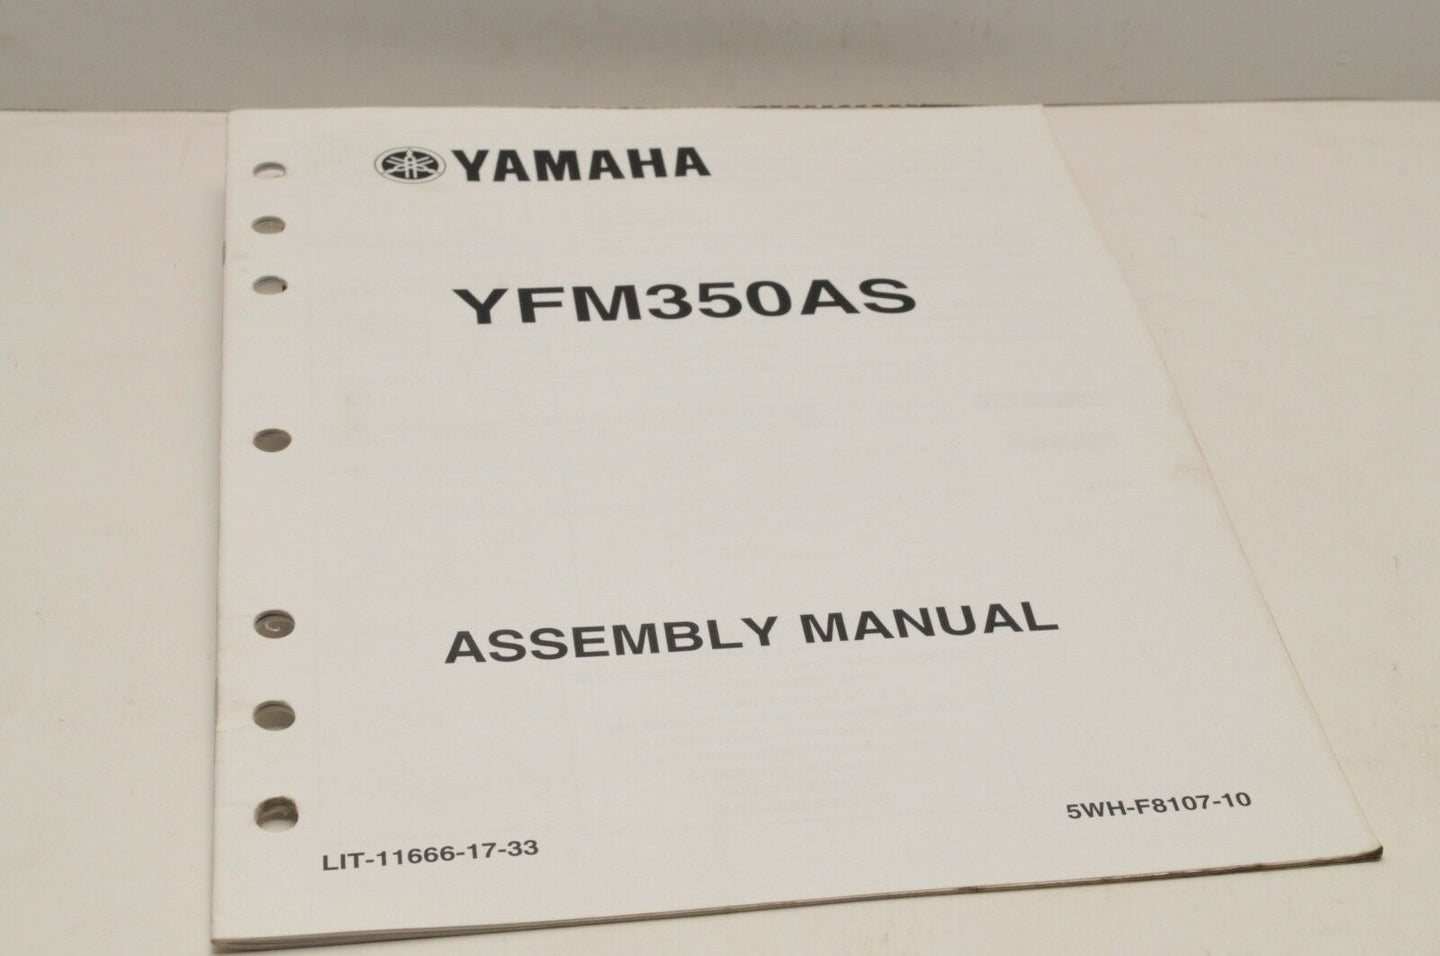 Genuine Yamaha ASSEMBLY SETUP MANUAL YFM350AS BRUIN 350 2004 LIT-11666-17-33